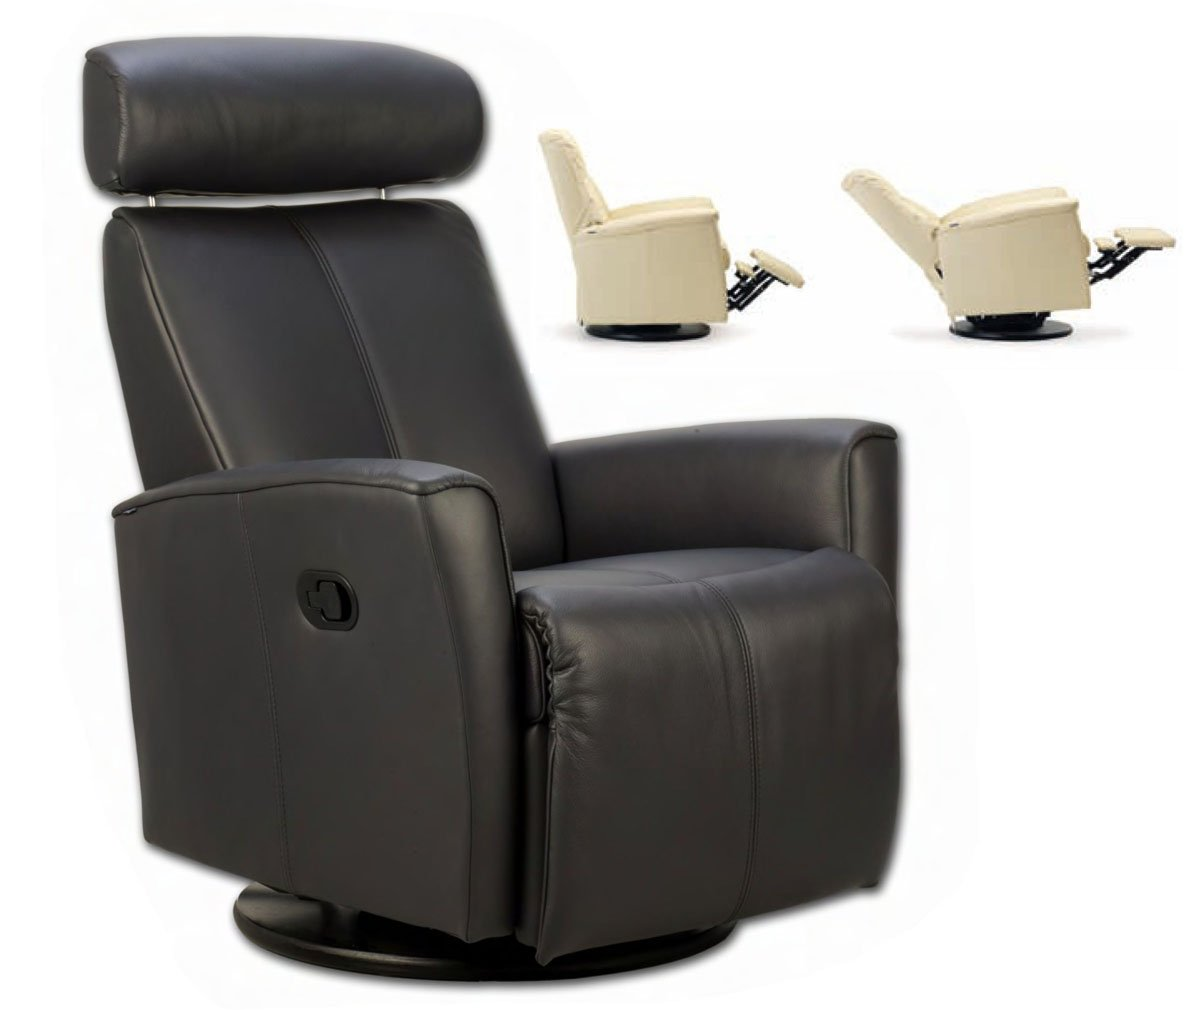 Amazon.com Fjords Atlantis Swing Relaxer Zero Gravity Recliner Norwegian Ergonomic Scandinavian Lounge Anti-Gravity Reclining Chair Furniture Premium Astro ...  sc 1 st  Amazon.com : zero gravity recliner leather - islam-shia.org